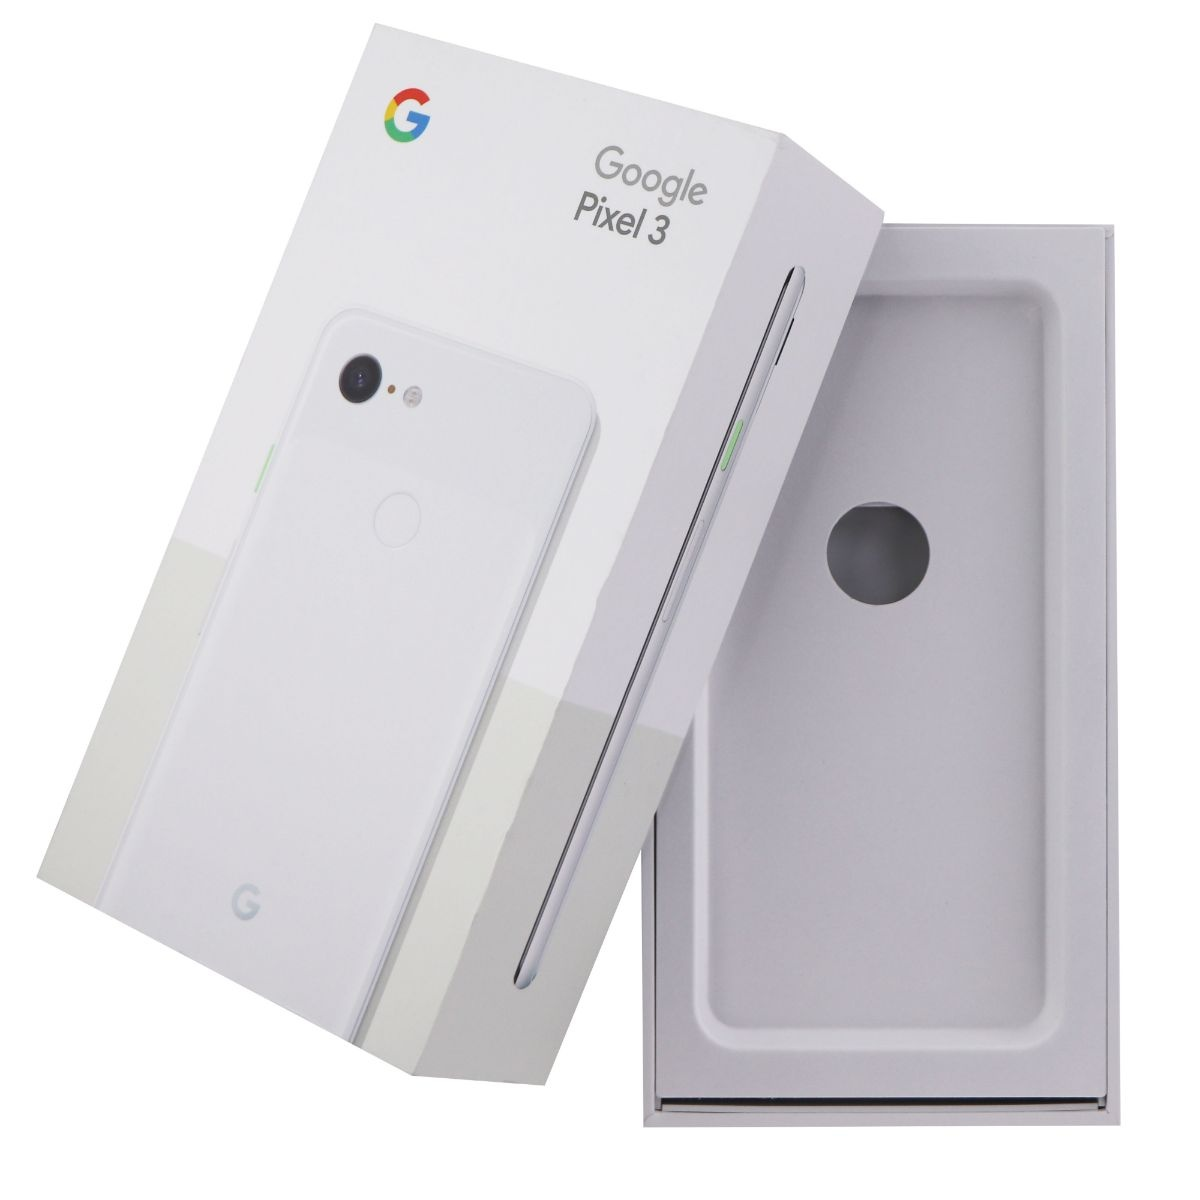 RETAIL BOX - Google Pixel 3 - 64GB / Clearly White - NO DEVICE